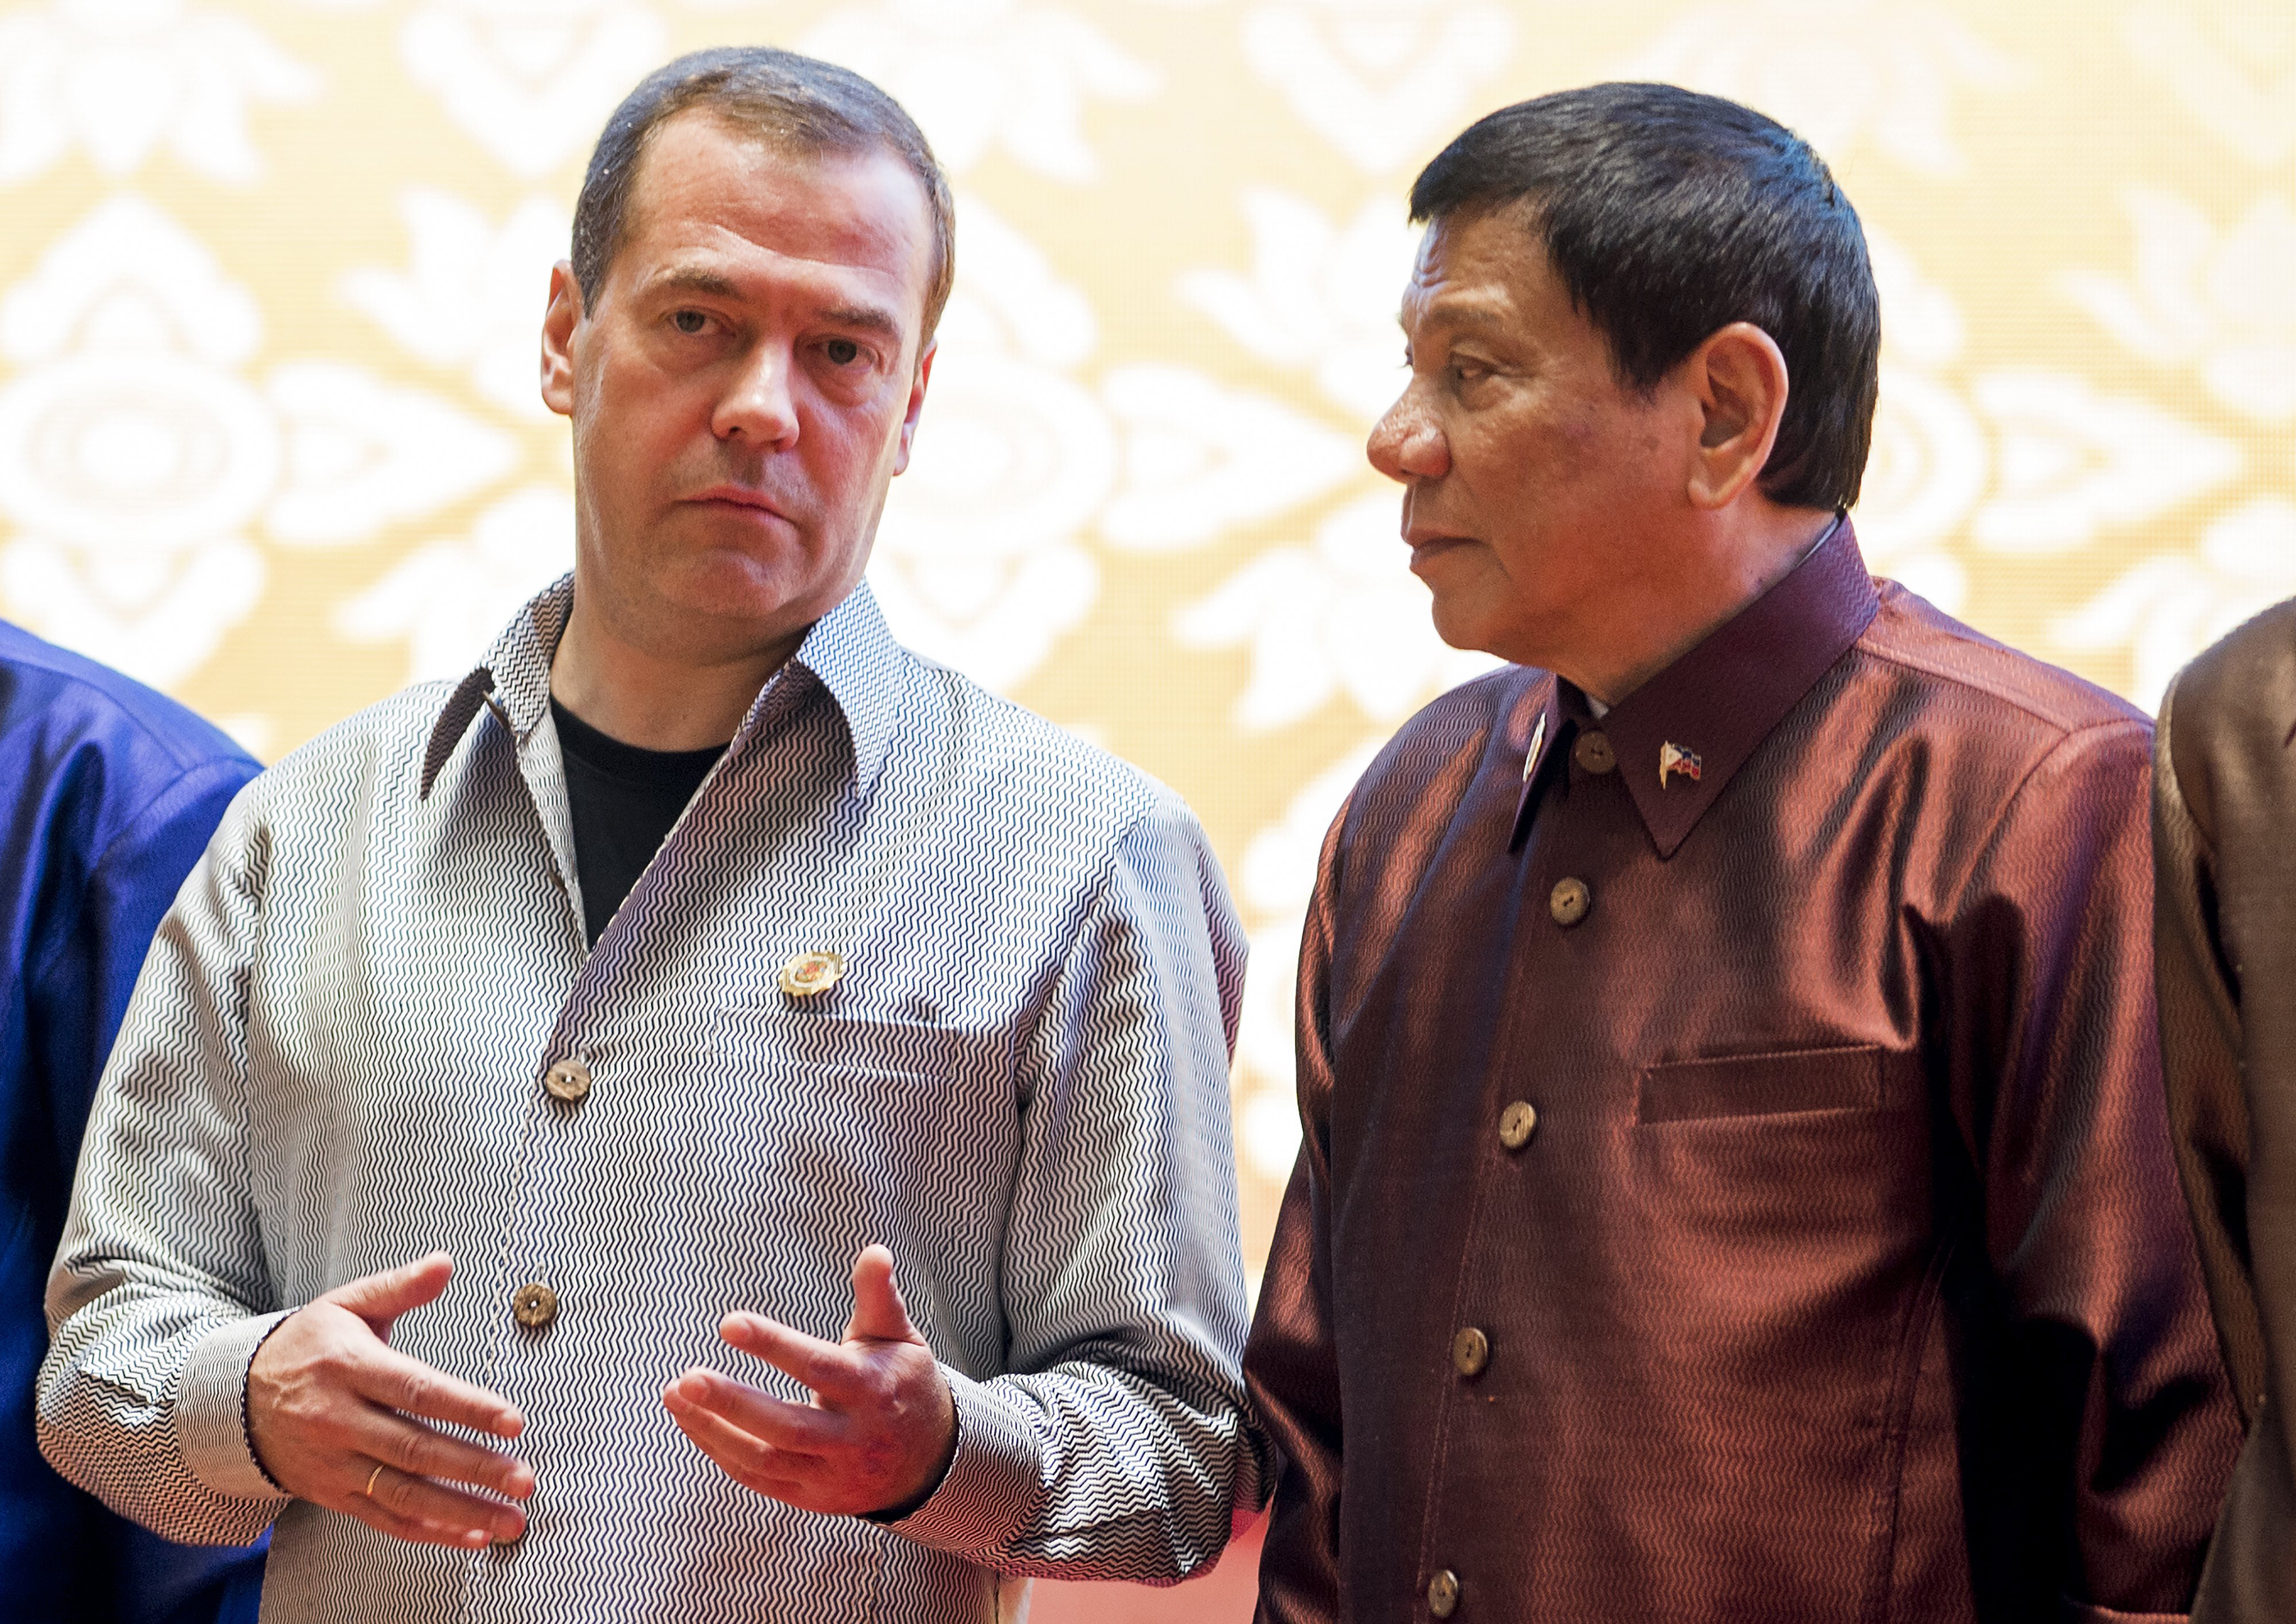 Russian Prime Minister Dmitry Medvedev (L) chats with Philippine President Rodrigo Duterte as they attend the gala dinner during the second day of the Association of Southeast Asian Nations (ASEAN) Summit in Vientiane on September 7, 2016. The gathering will see the 10 ASEAN members meet by themselves, then with leaders from the US, Japan, South Korea and China. / AFP PHOTO / YE AUNG THU